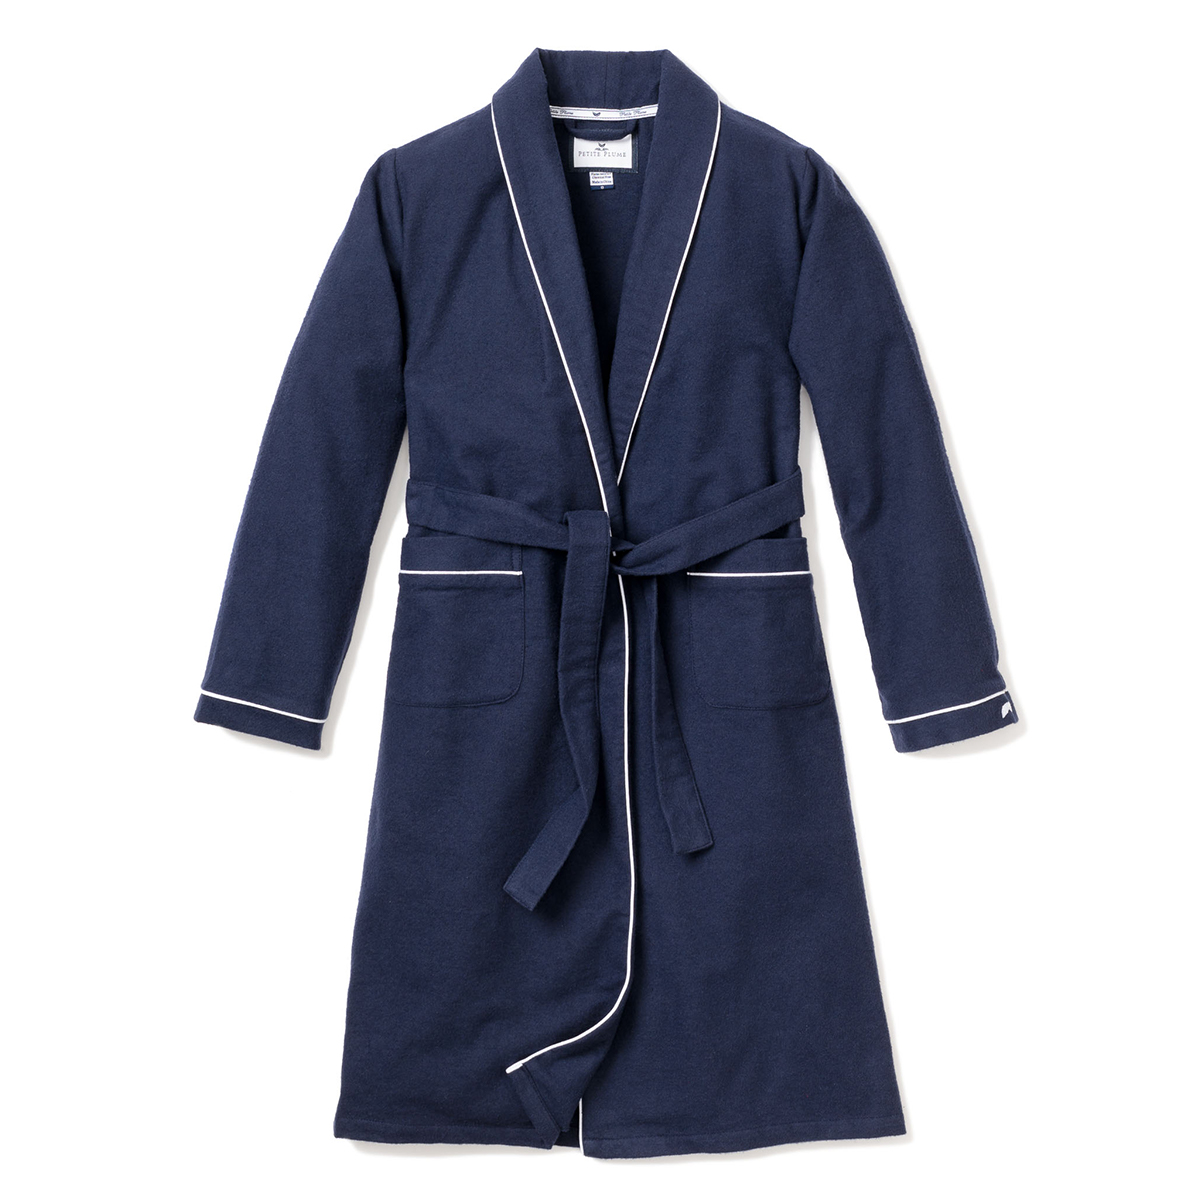 Petite Plume Kids Navy Robe with White Piping